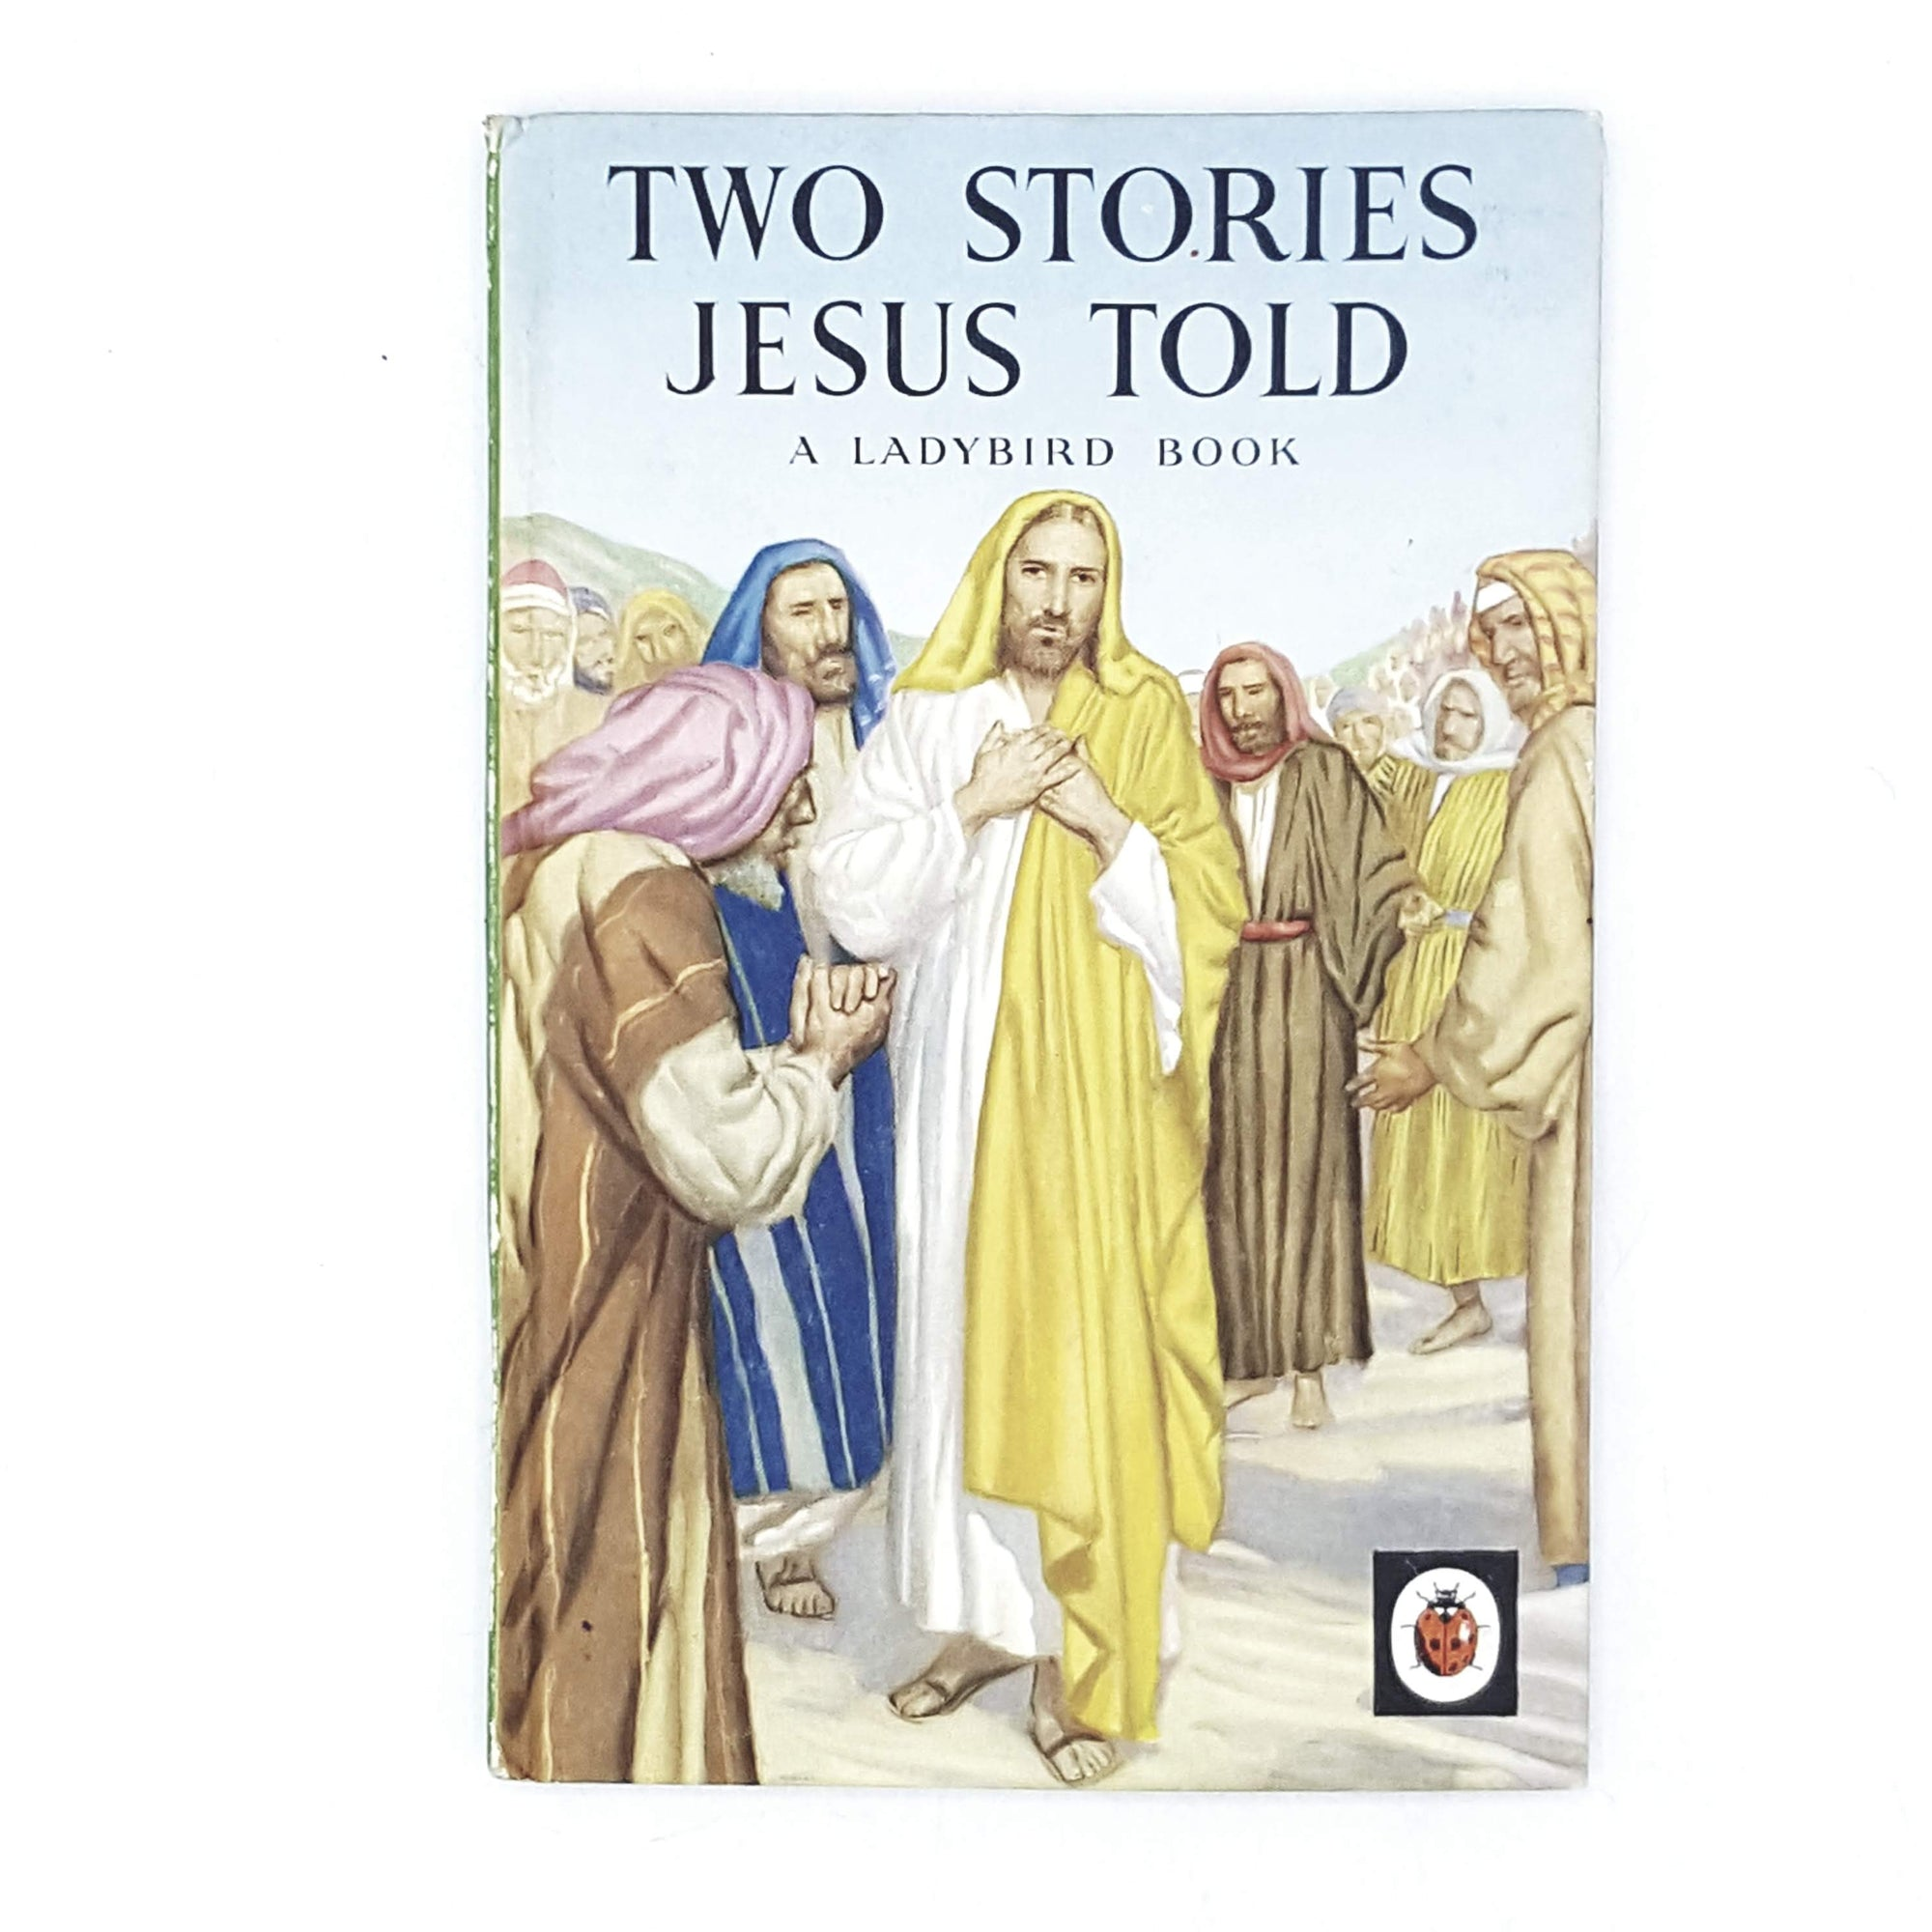 Two Stories Jesus Told by Lucy Diamond 1956